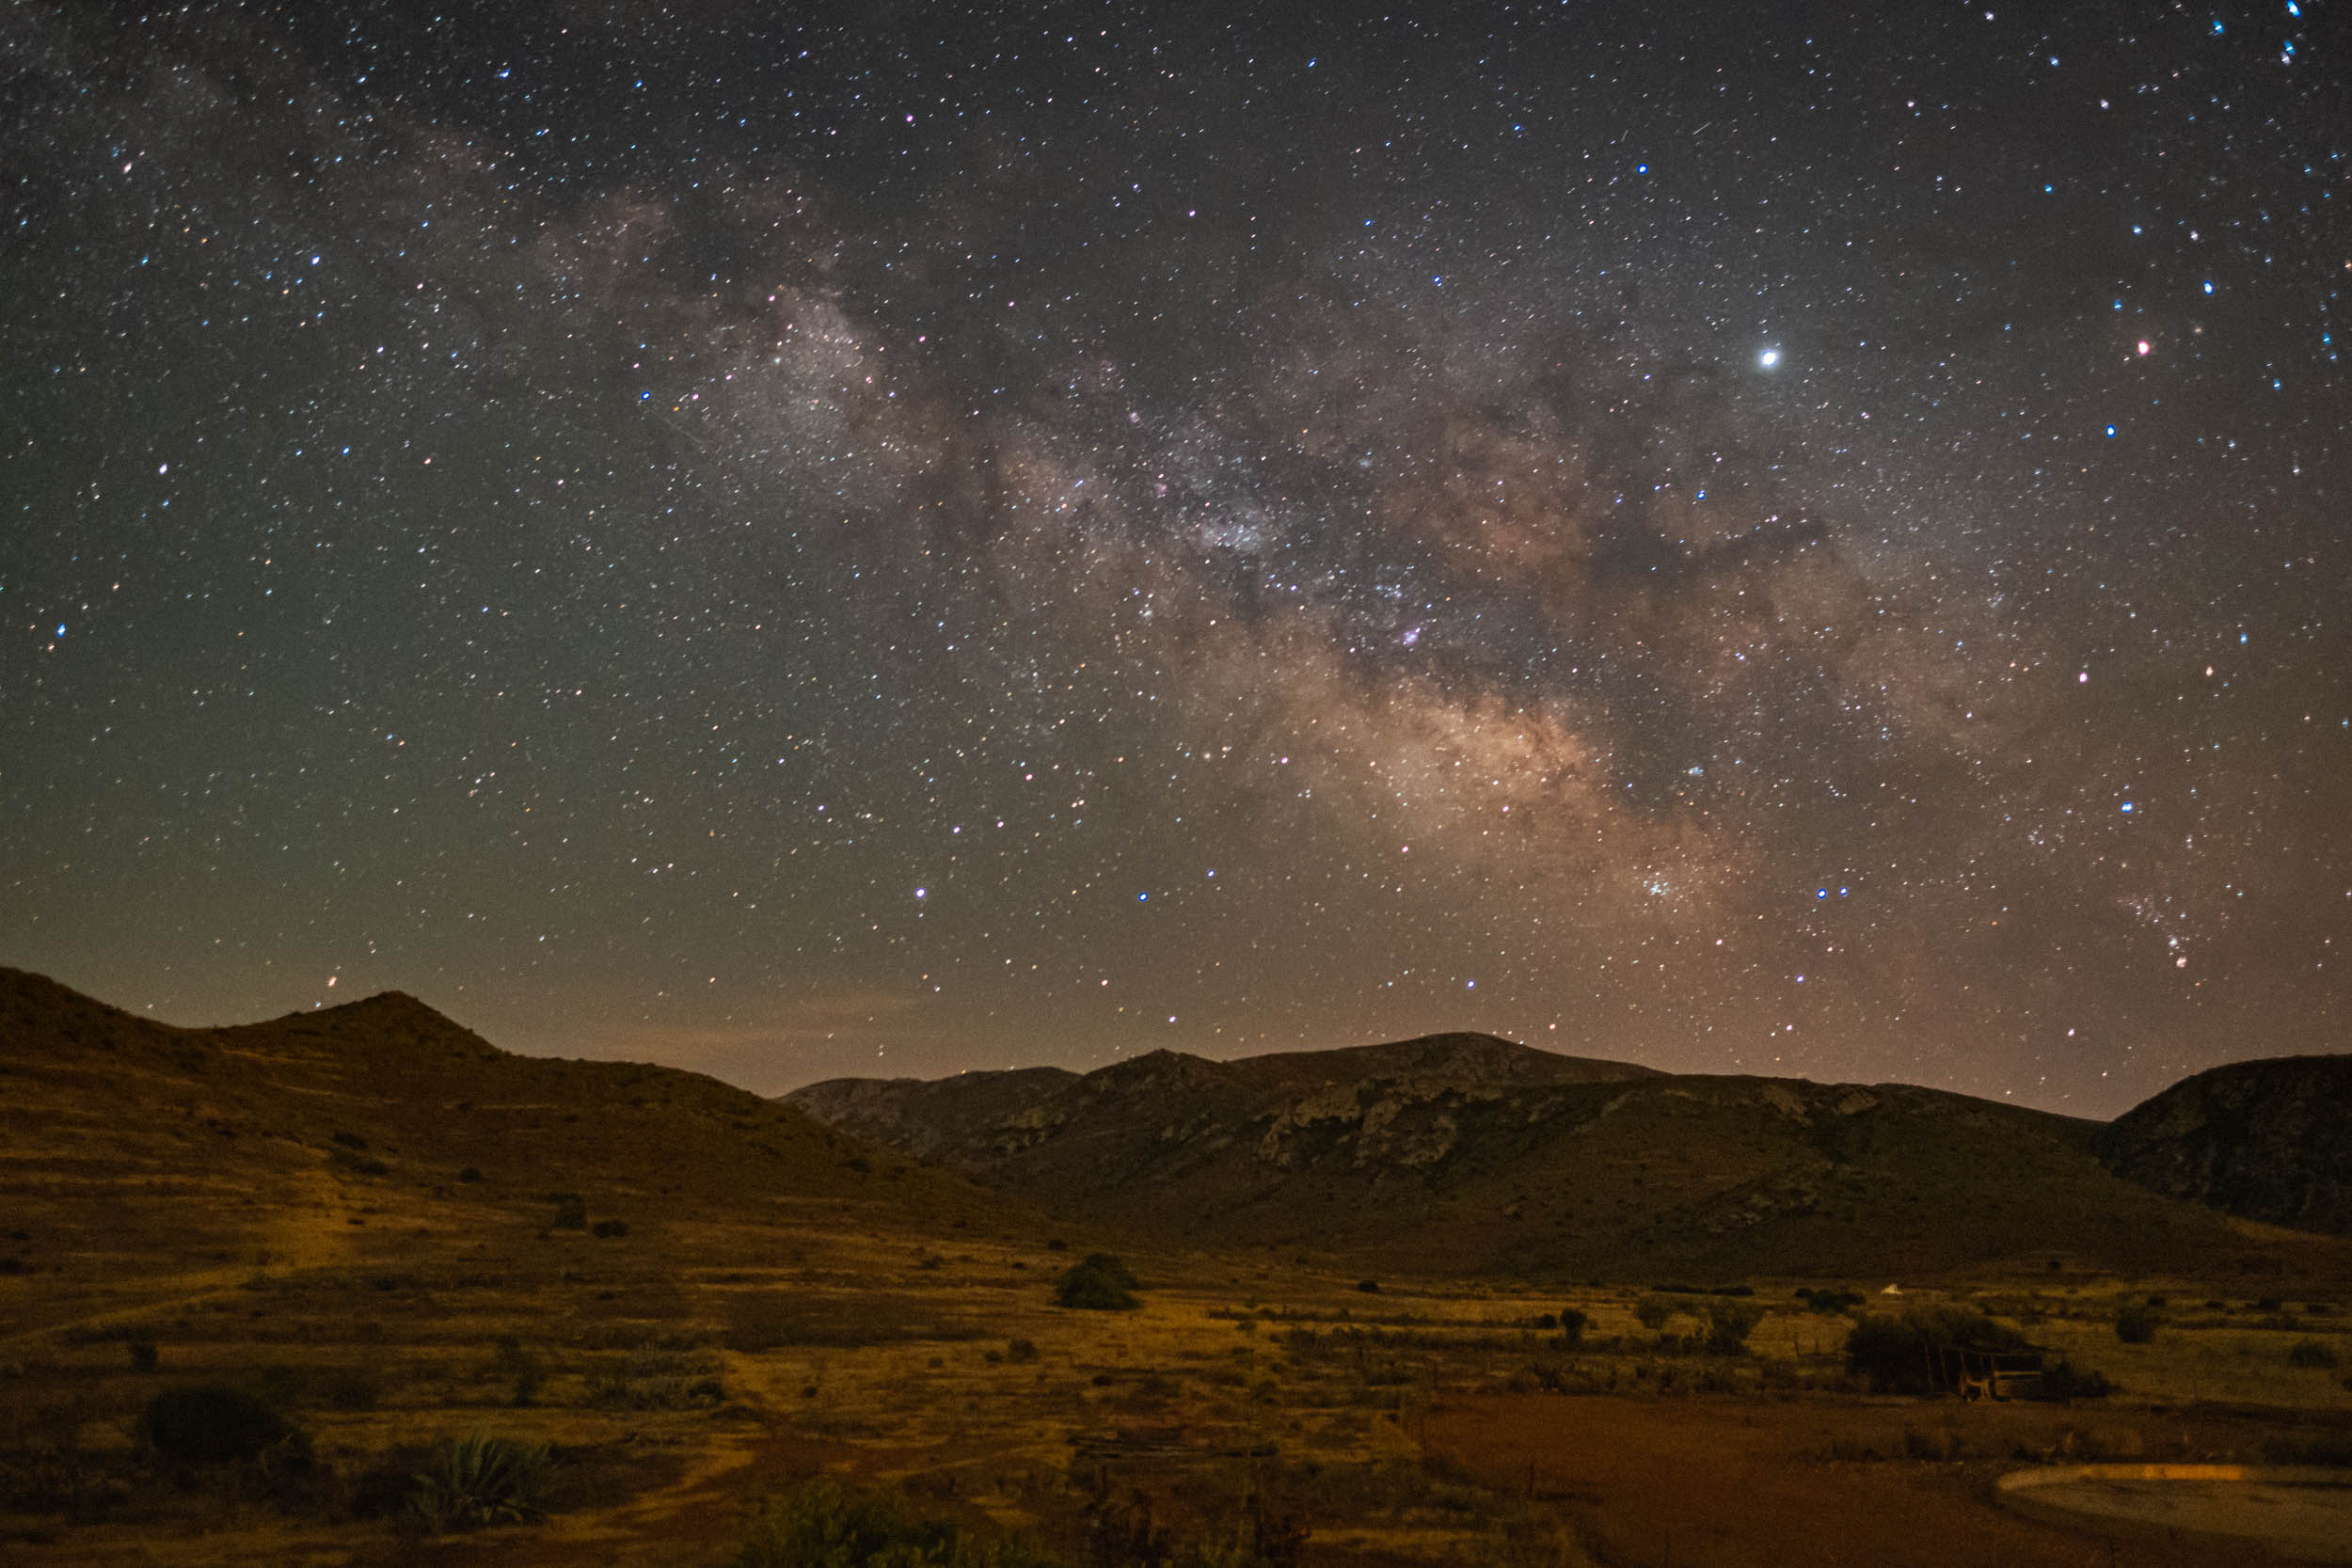 Milky Way over the volcanic mountains, Cabo de Gata.